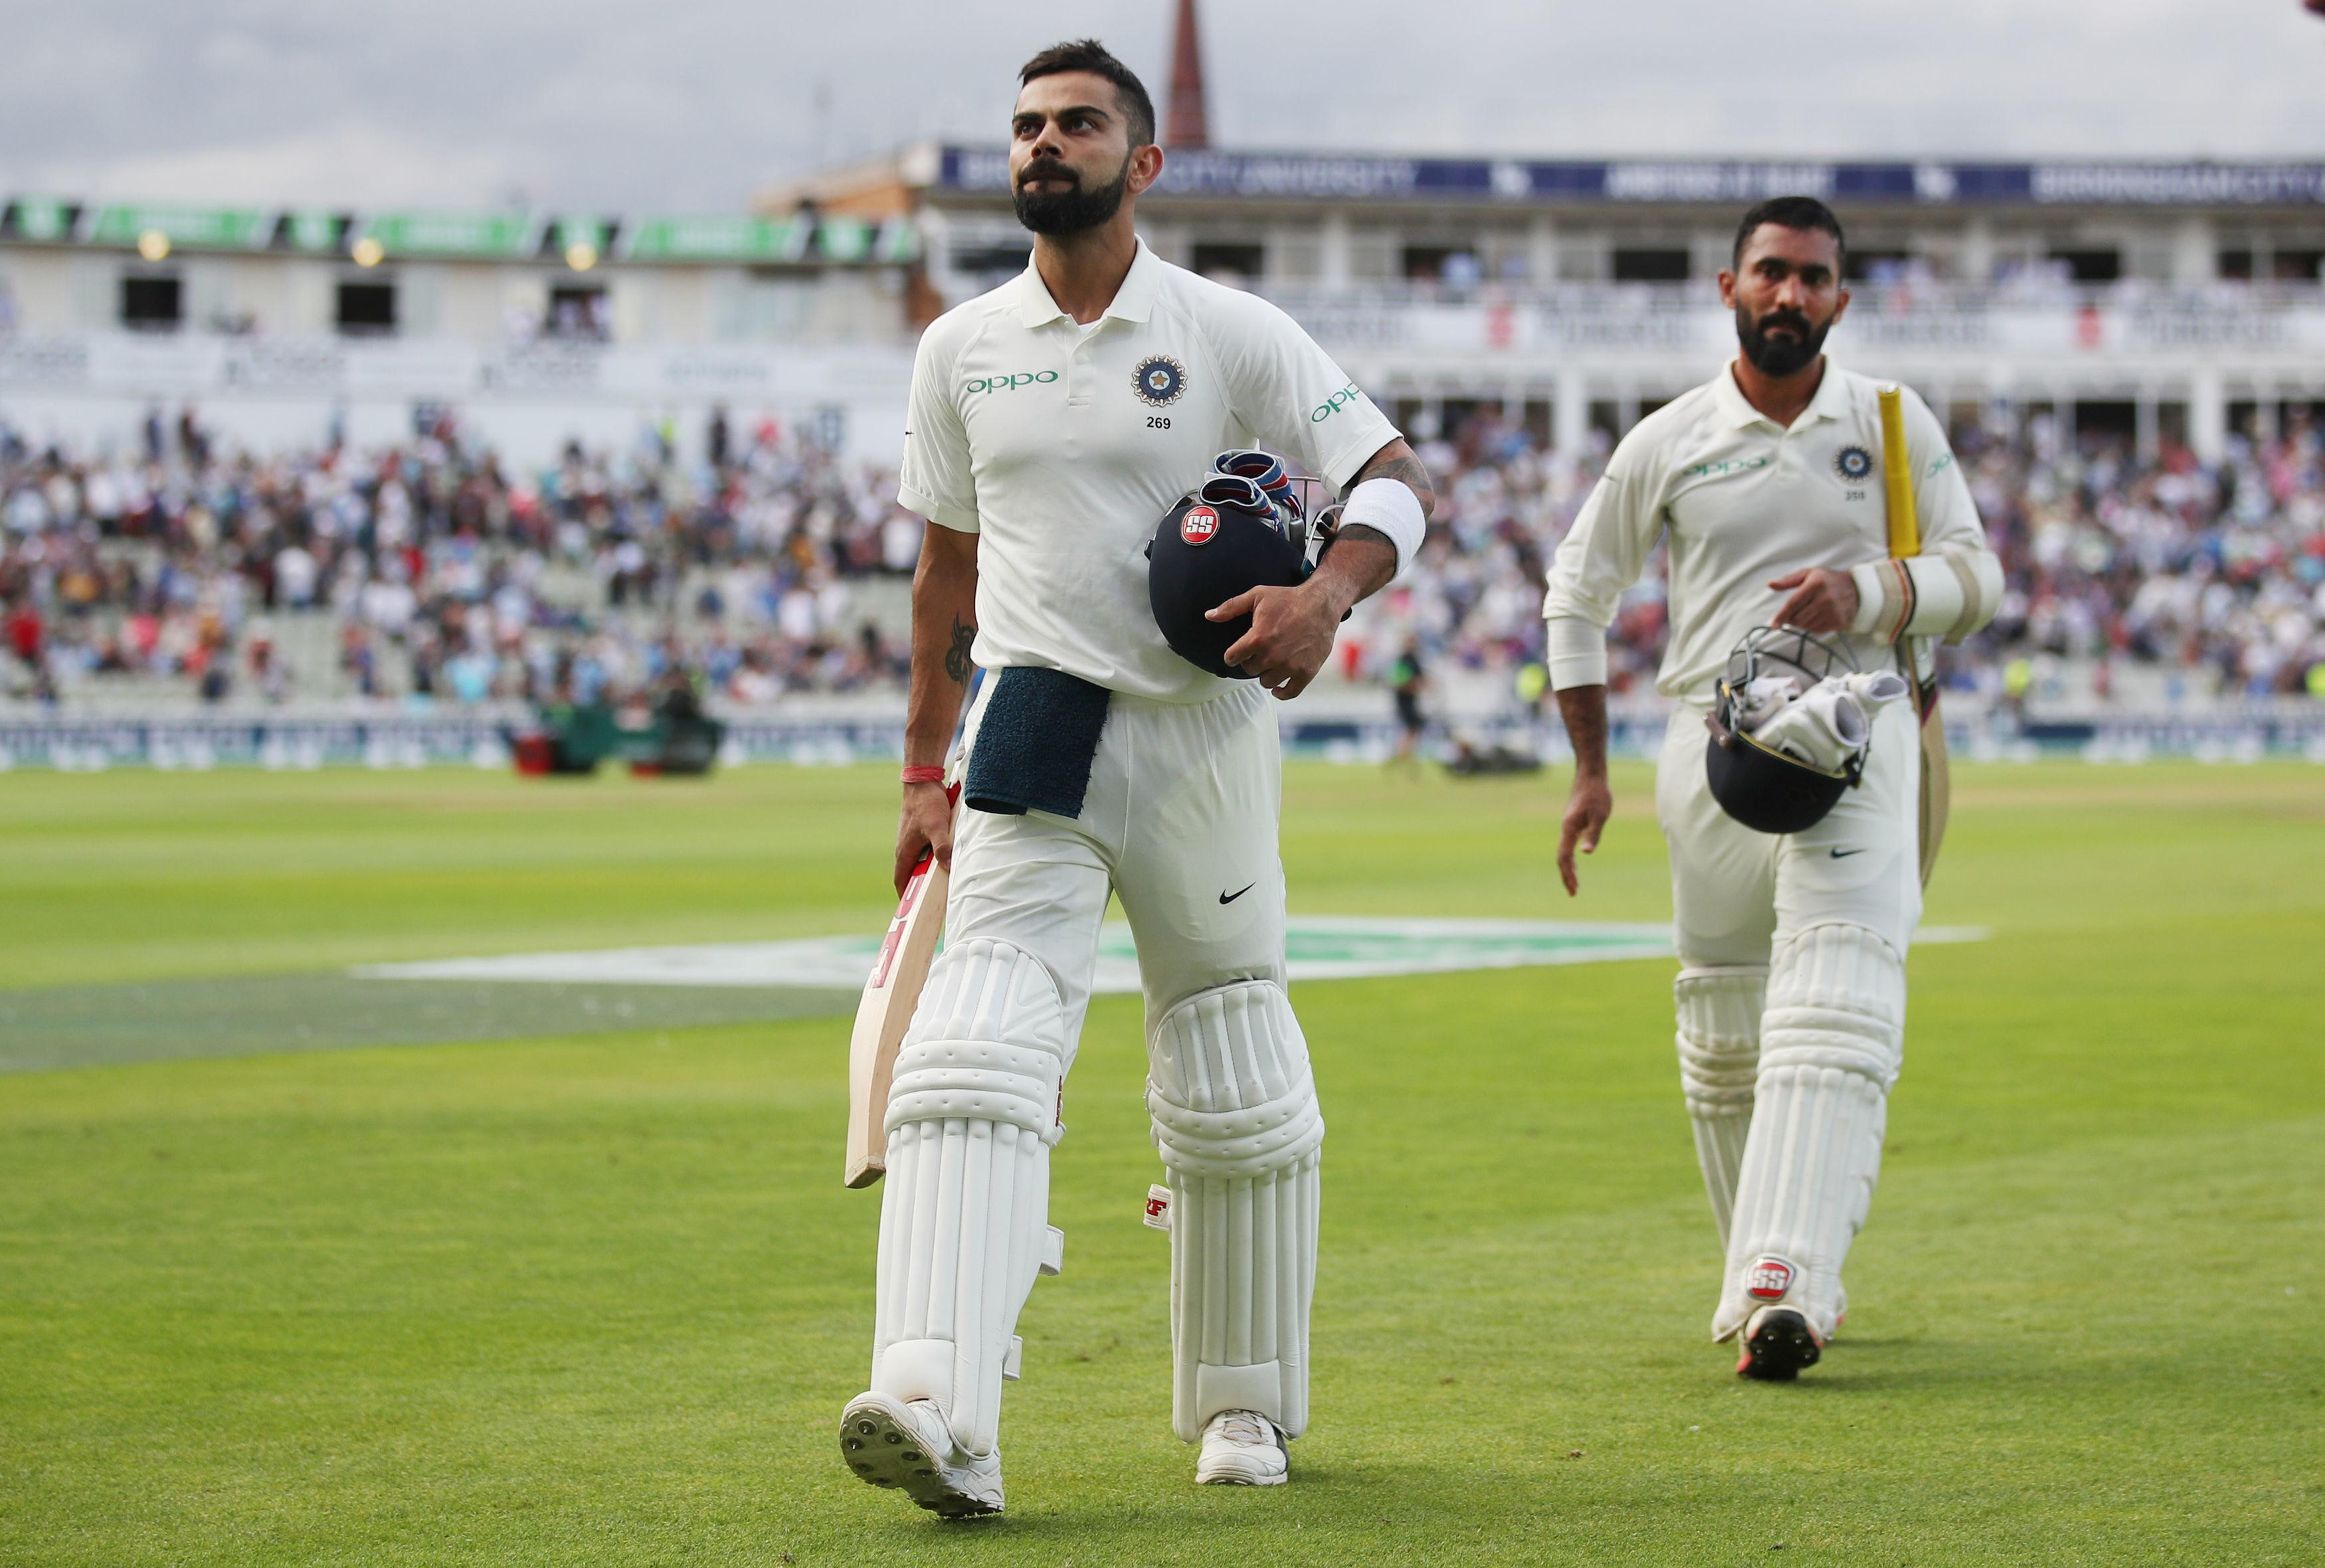 Virat Kohli is the big threat to England and unless they can take his wicket the game is there for India to win